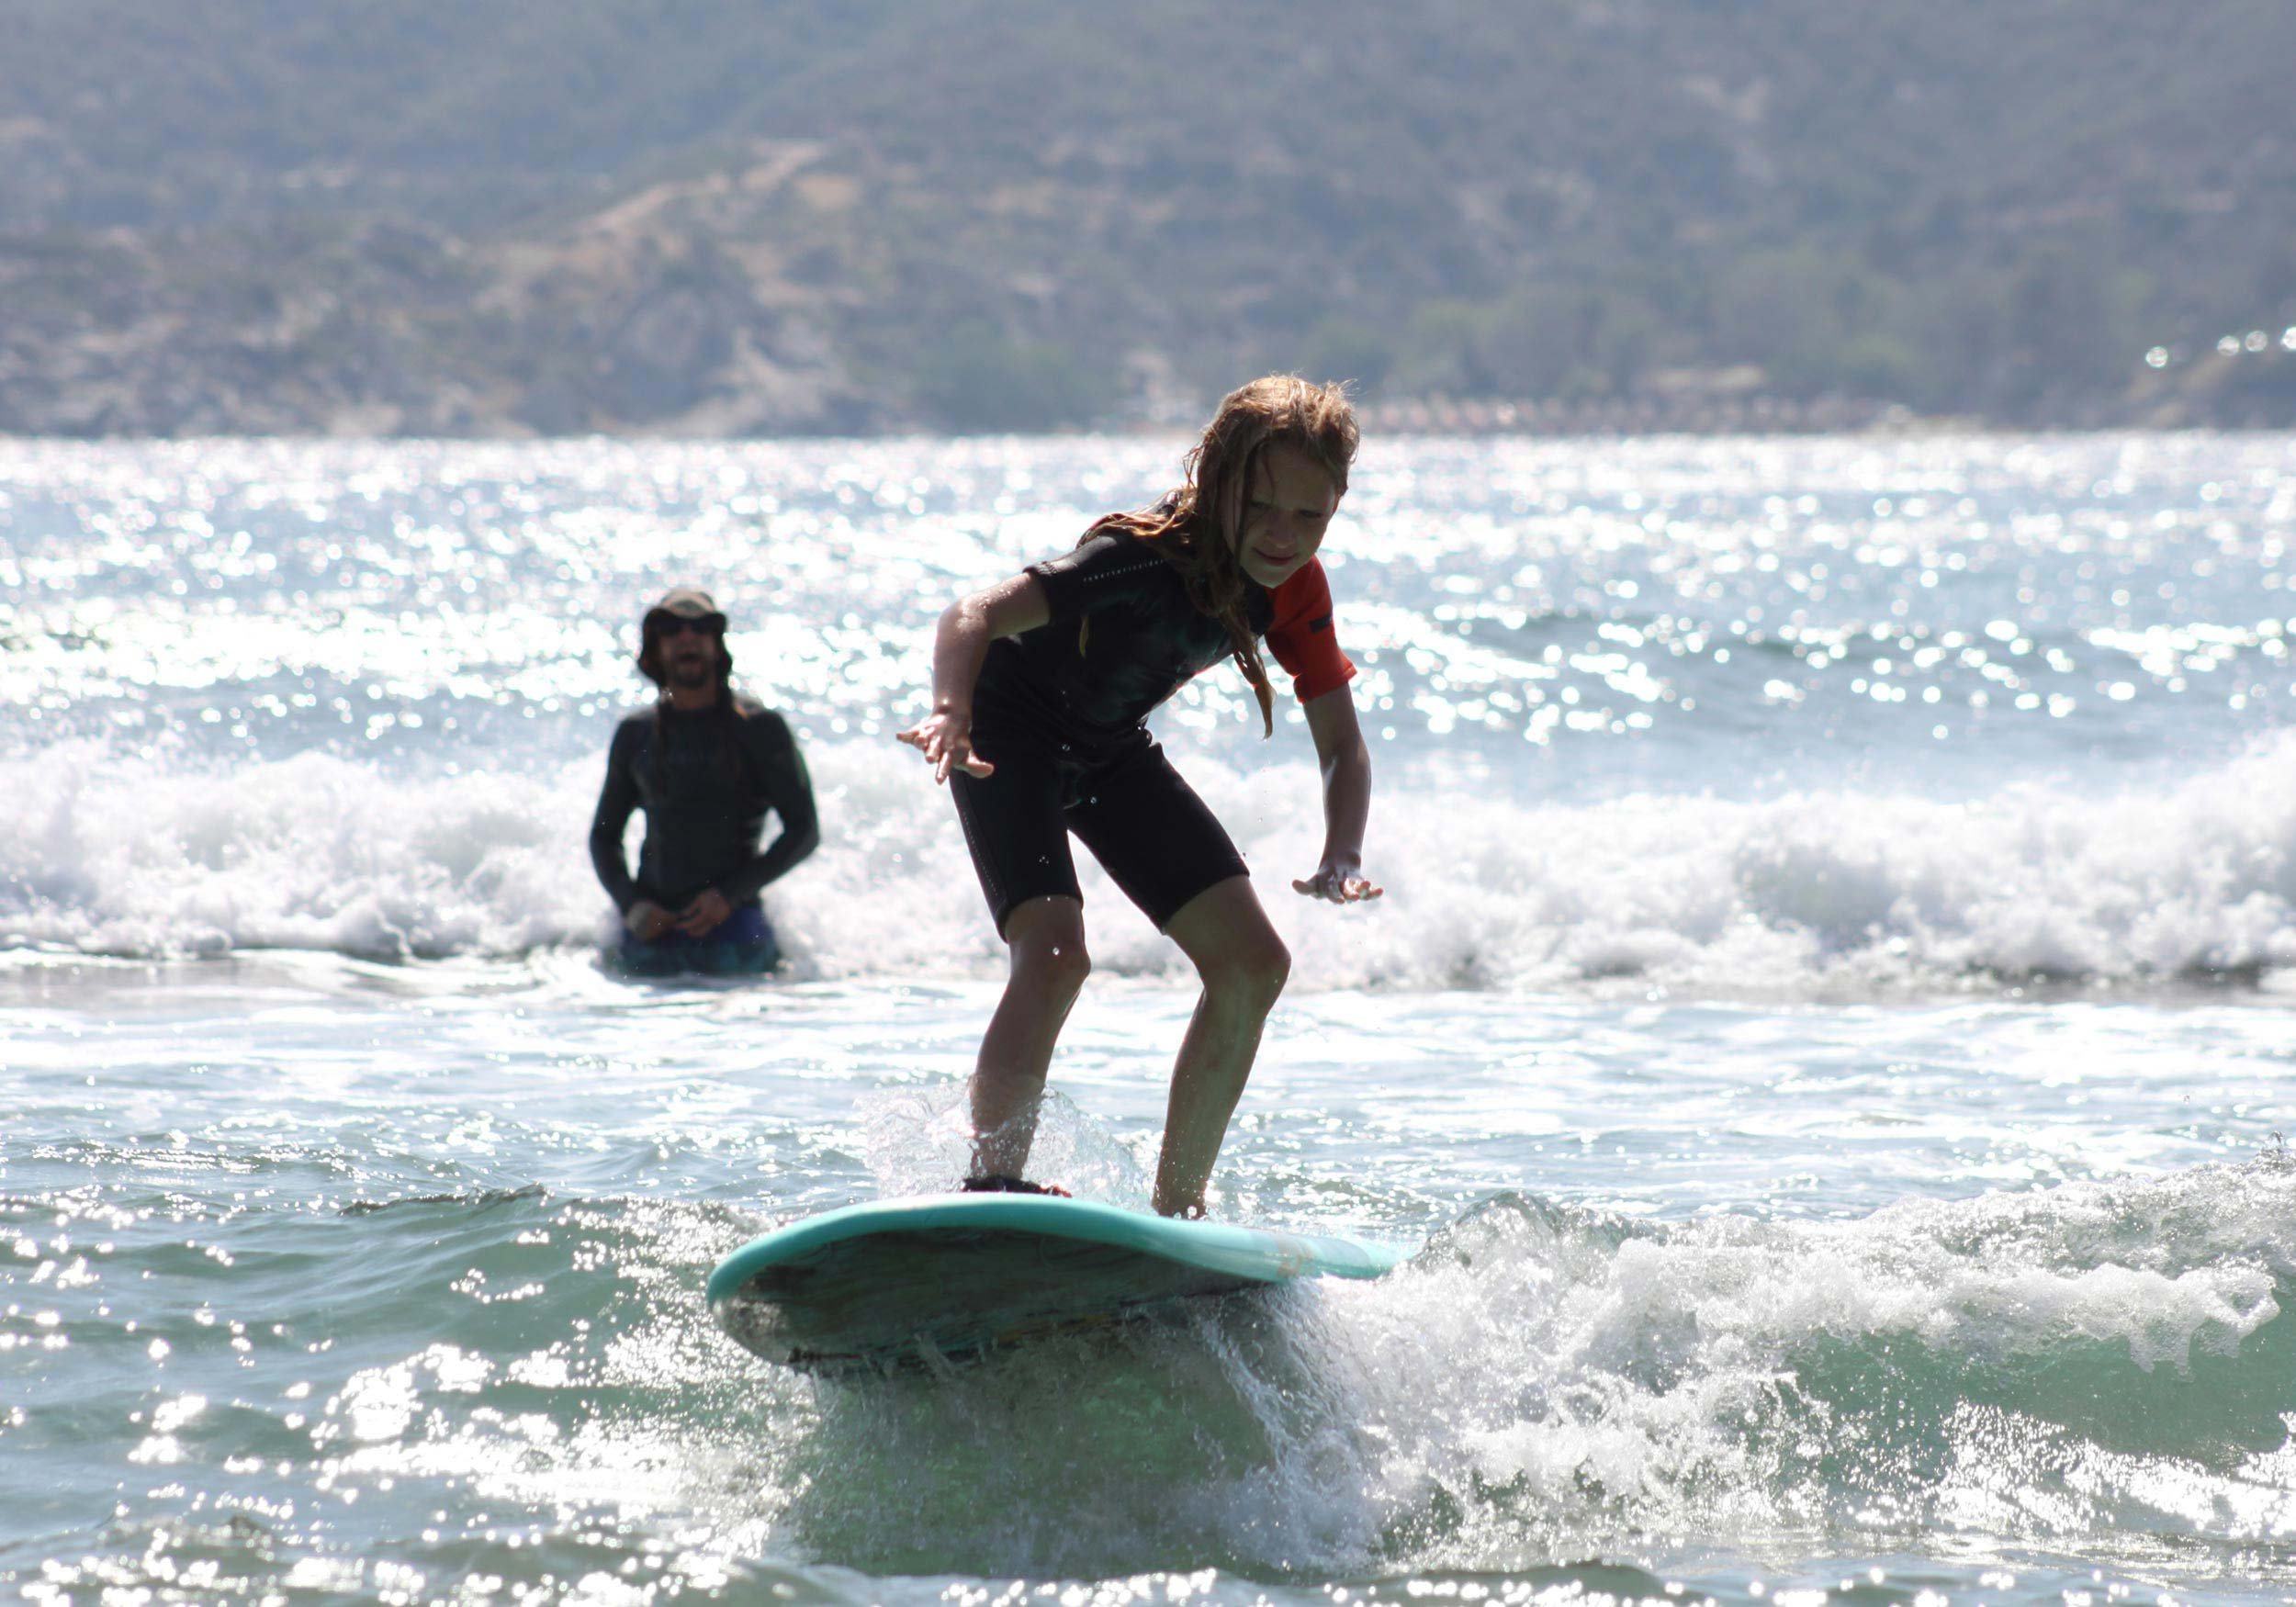 A child learning to surf